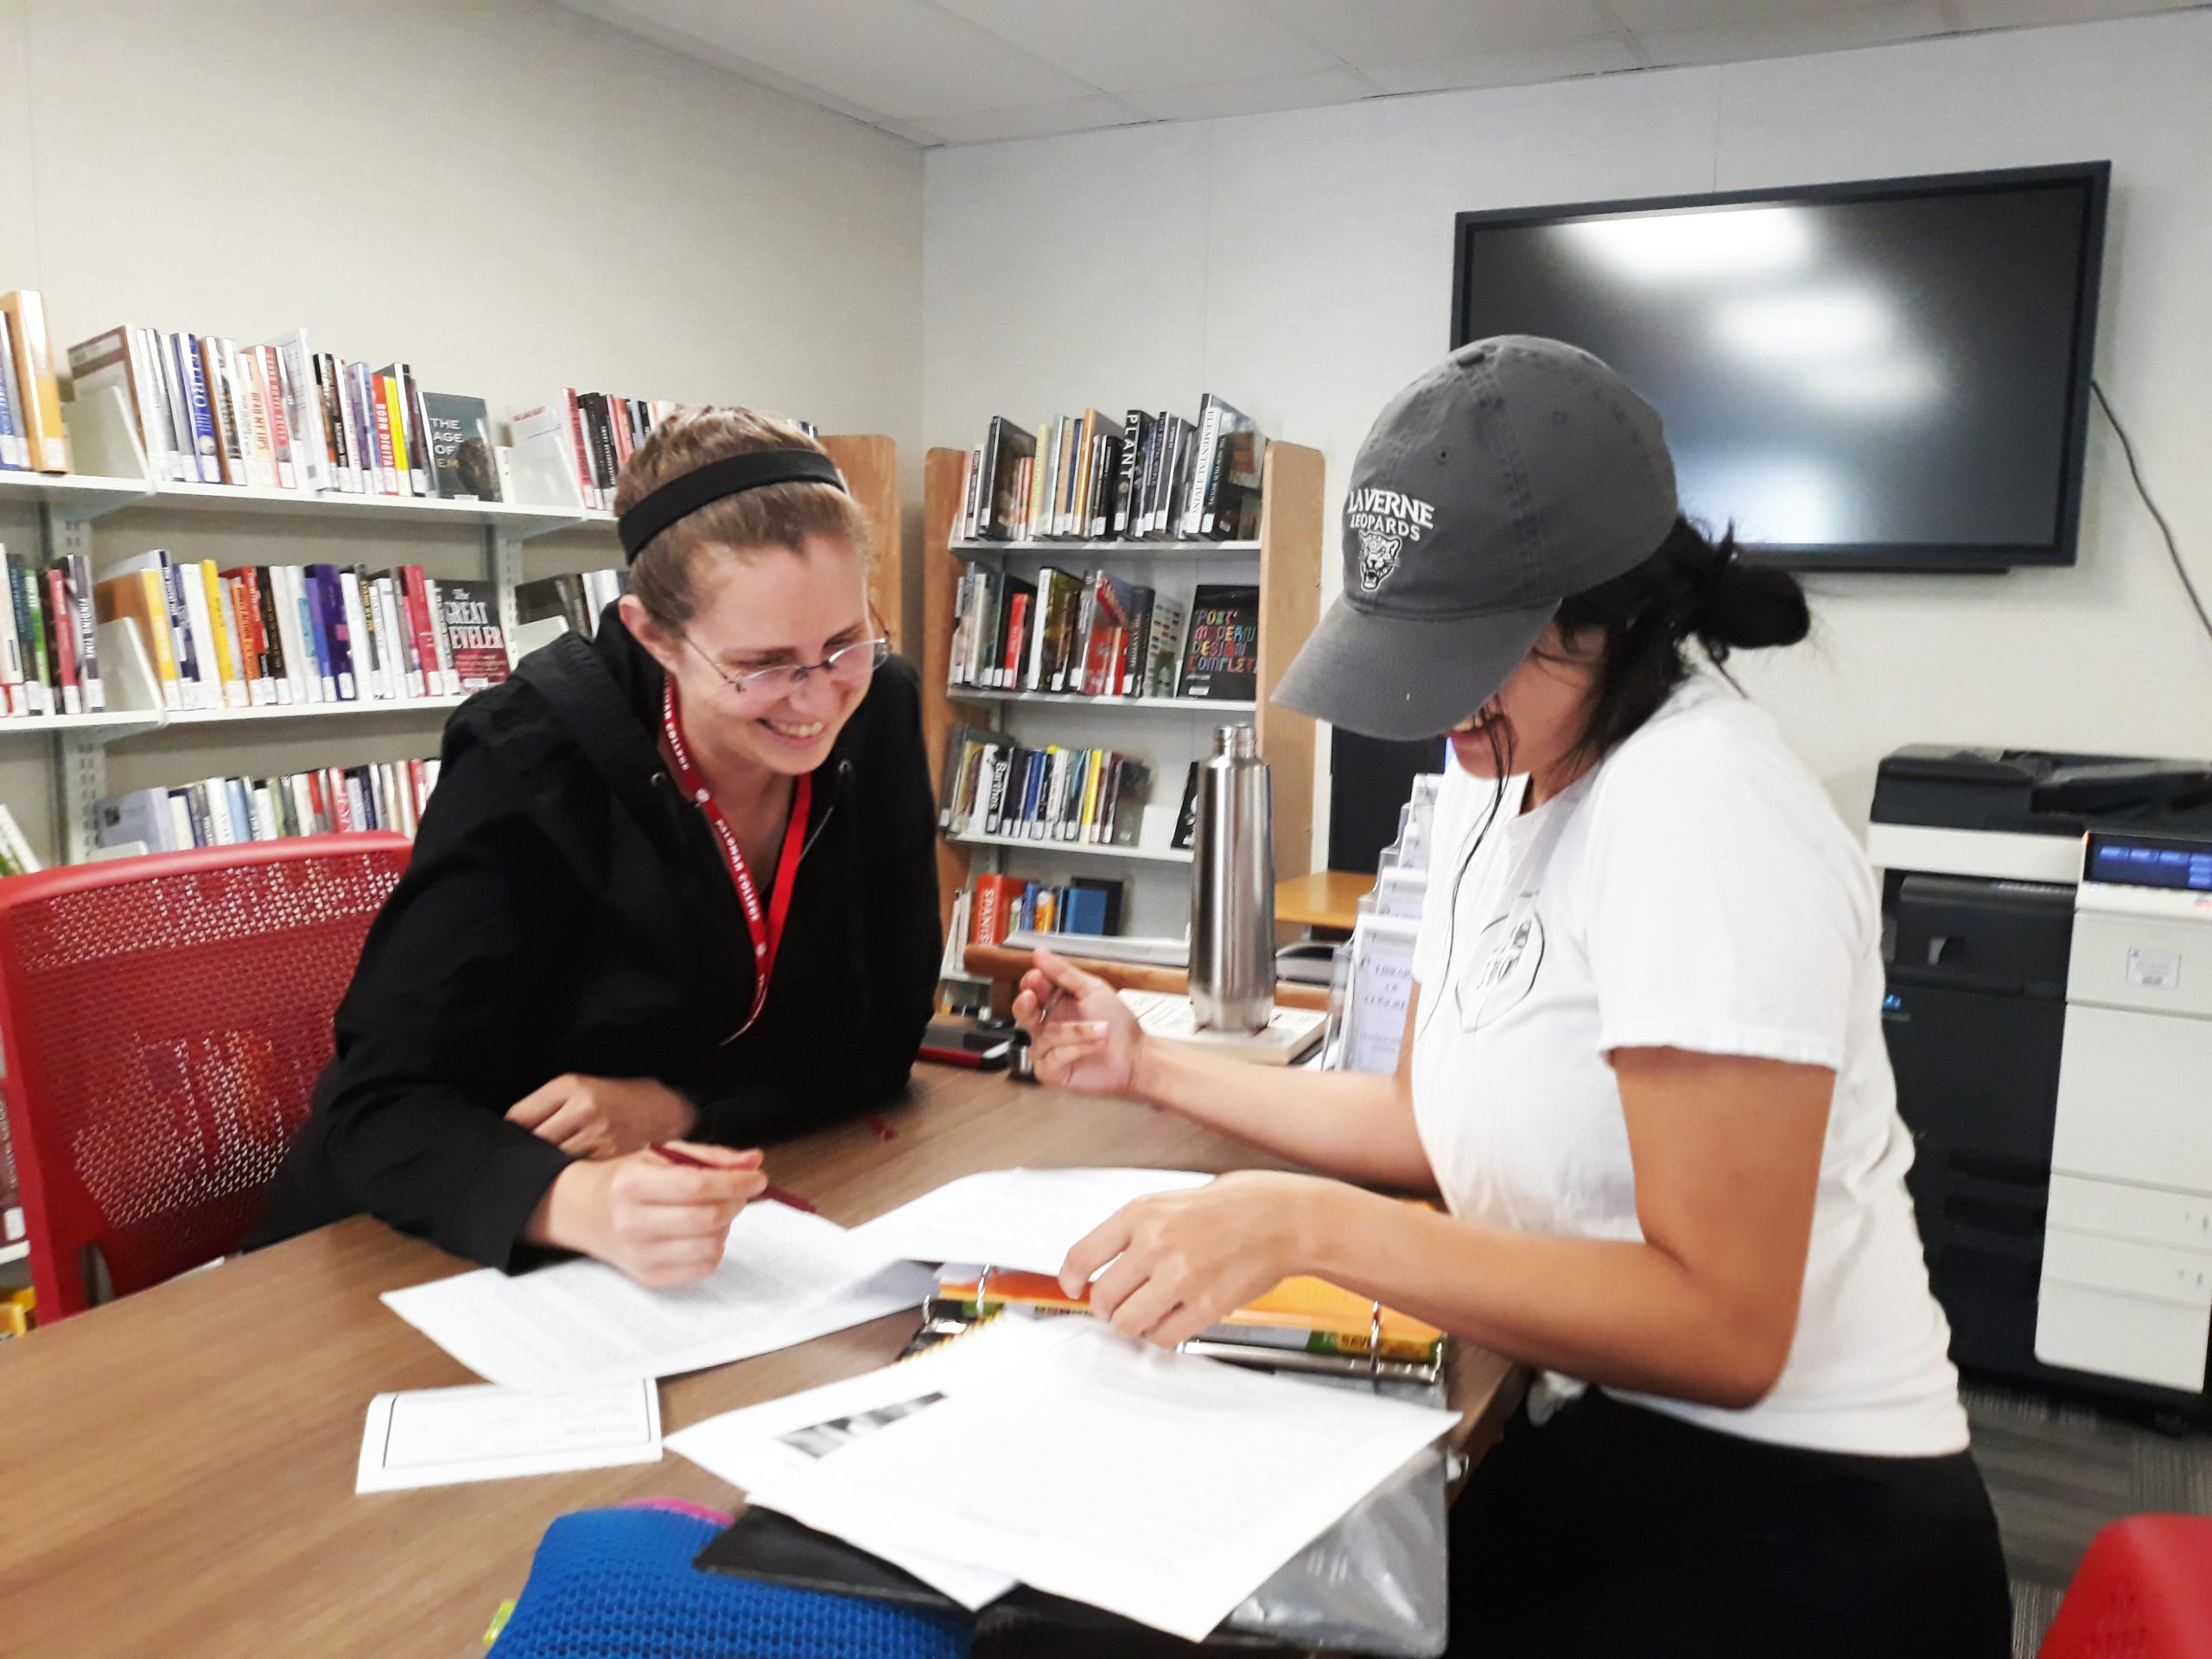 Fallbrook Education Center Teaching & Learning Center study session